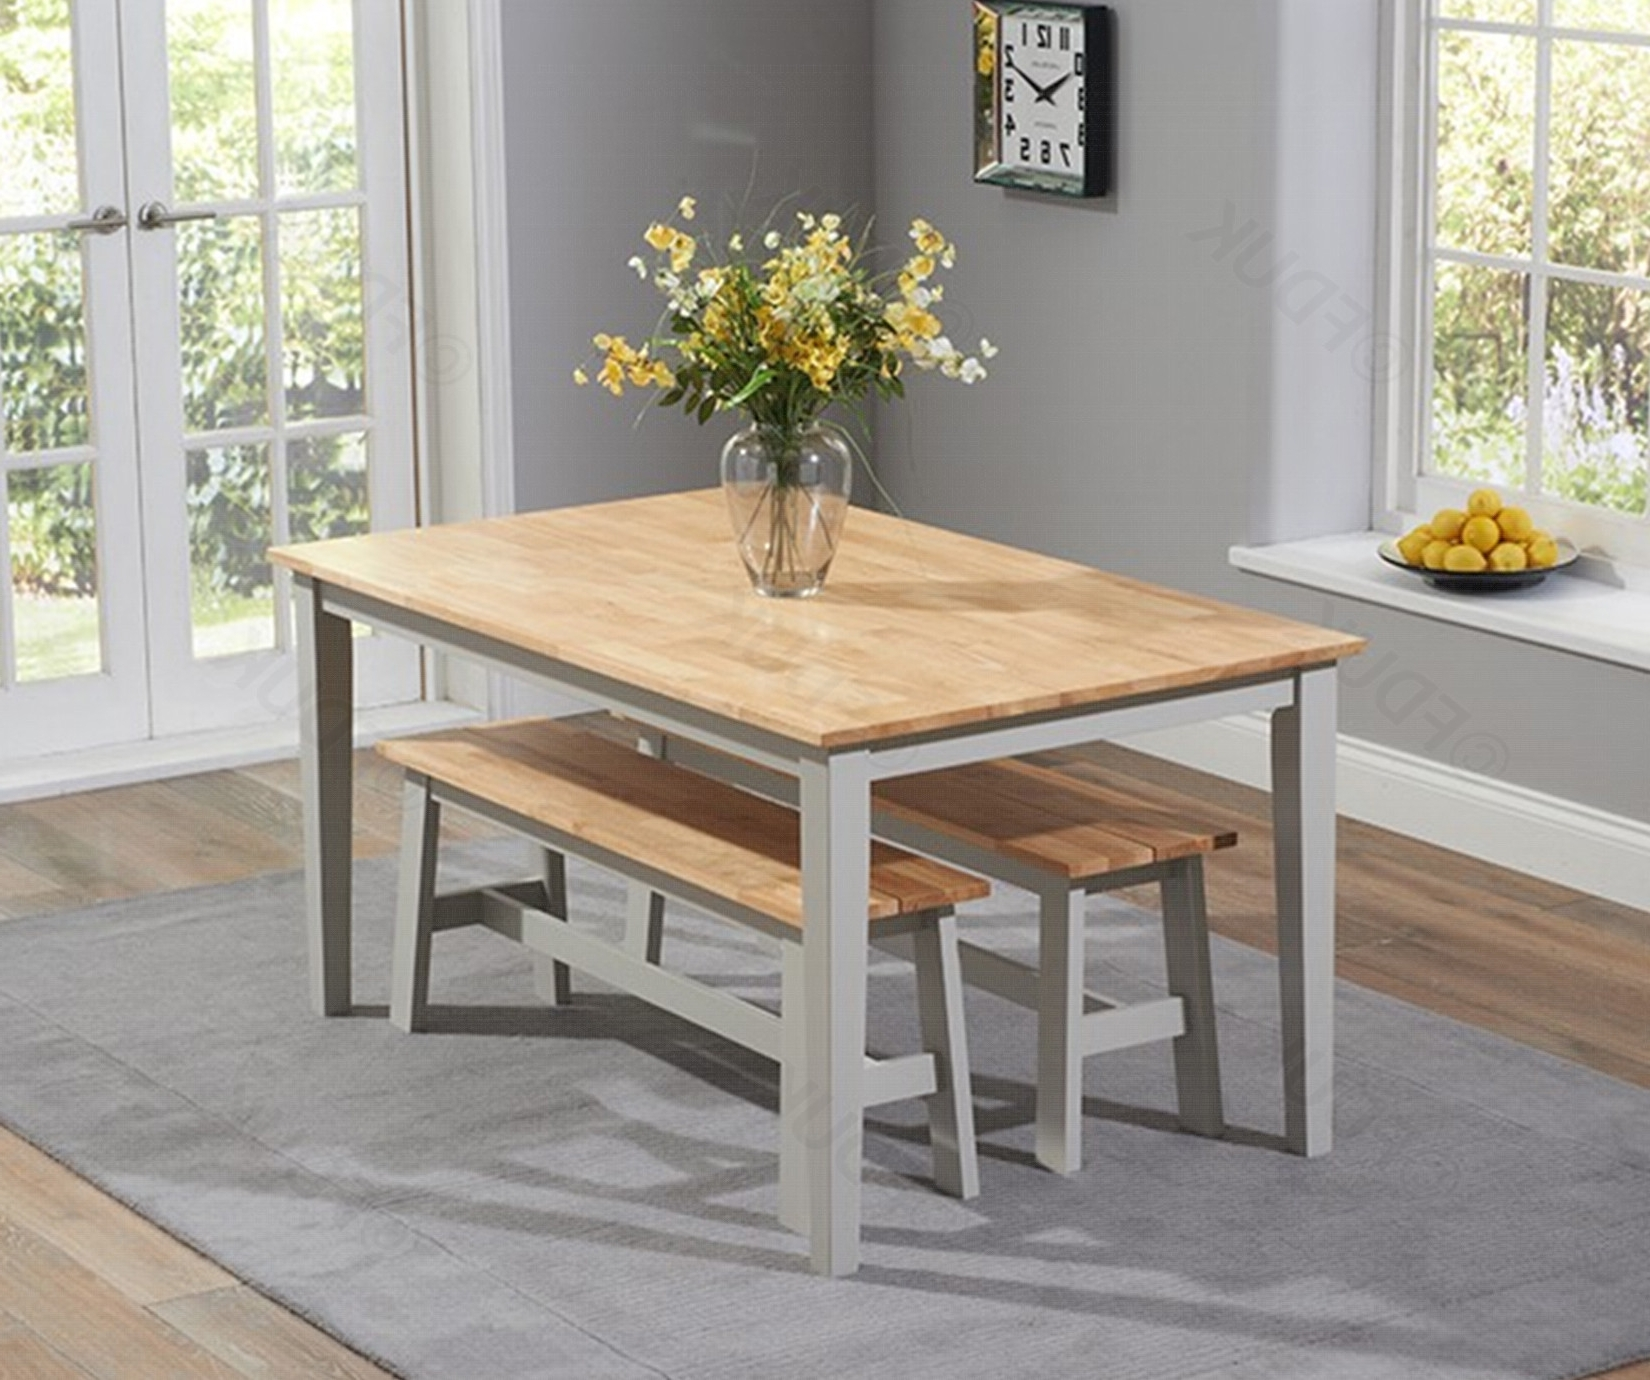 Chichester Dining Tables With Regard To Most Up To Date Mark Harris Chichester (View 12 of 25)